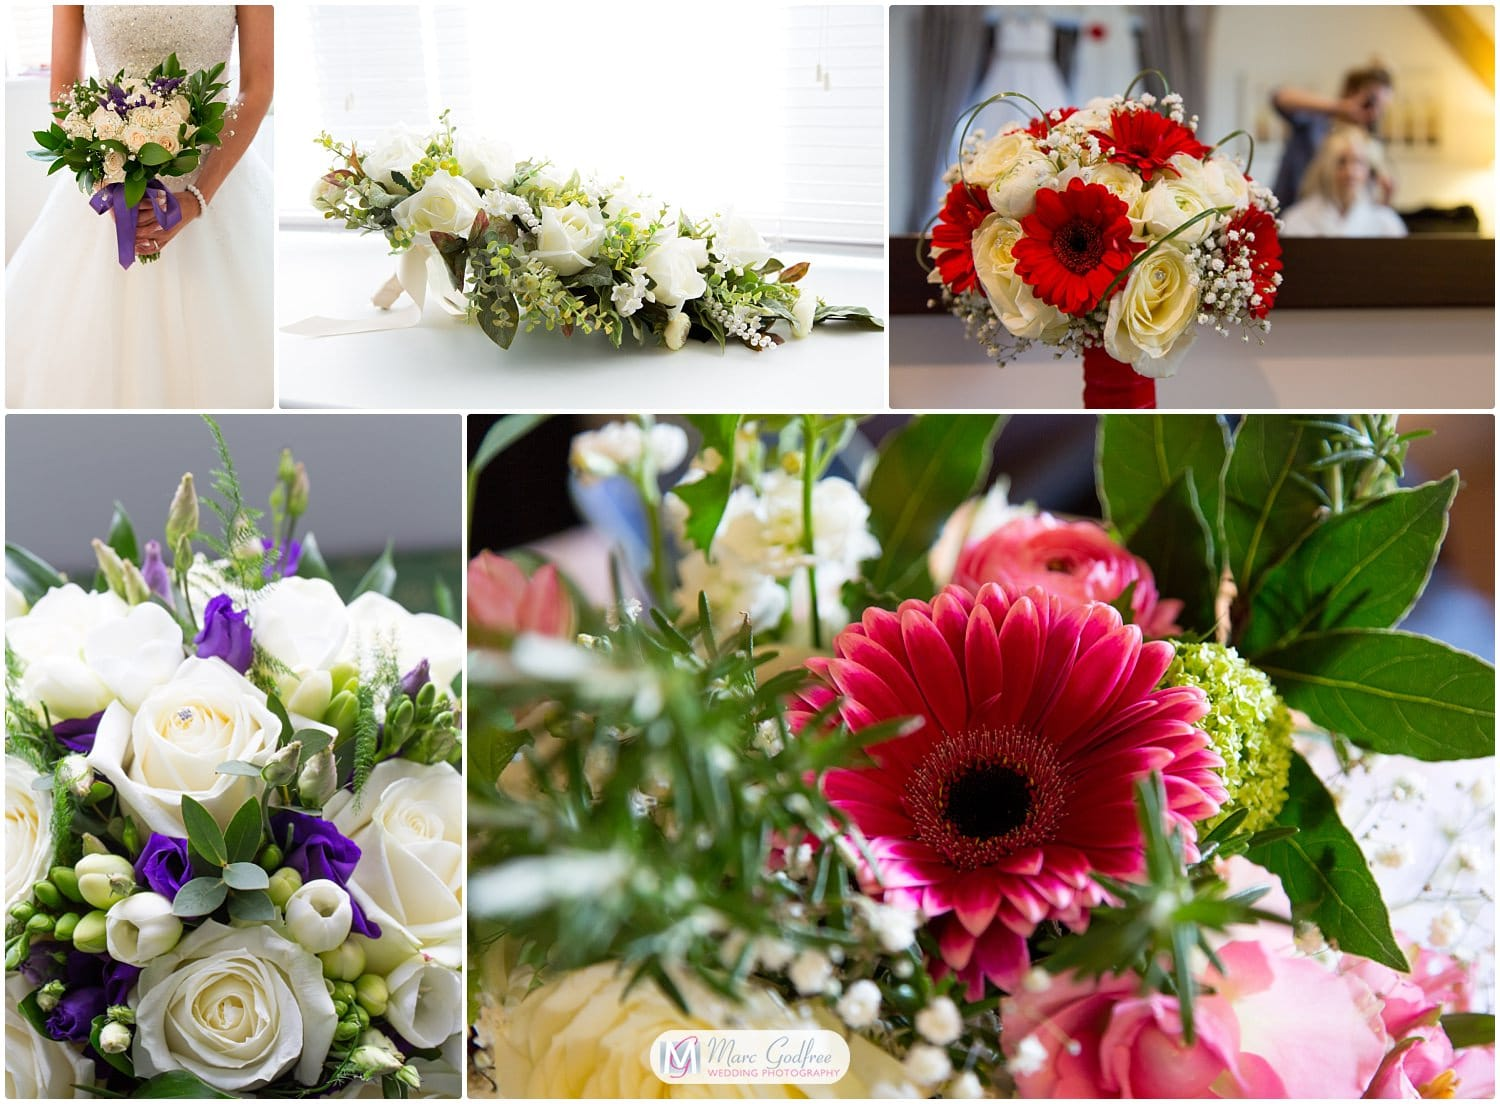 Post wedding flower ideas-donation